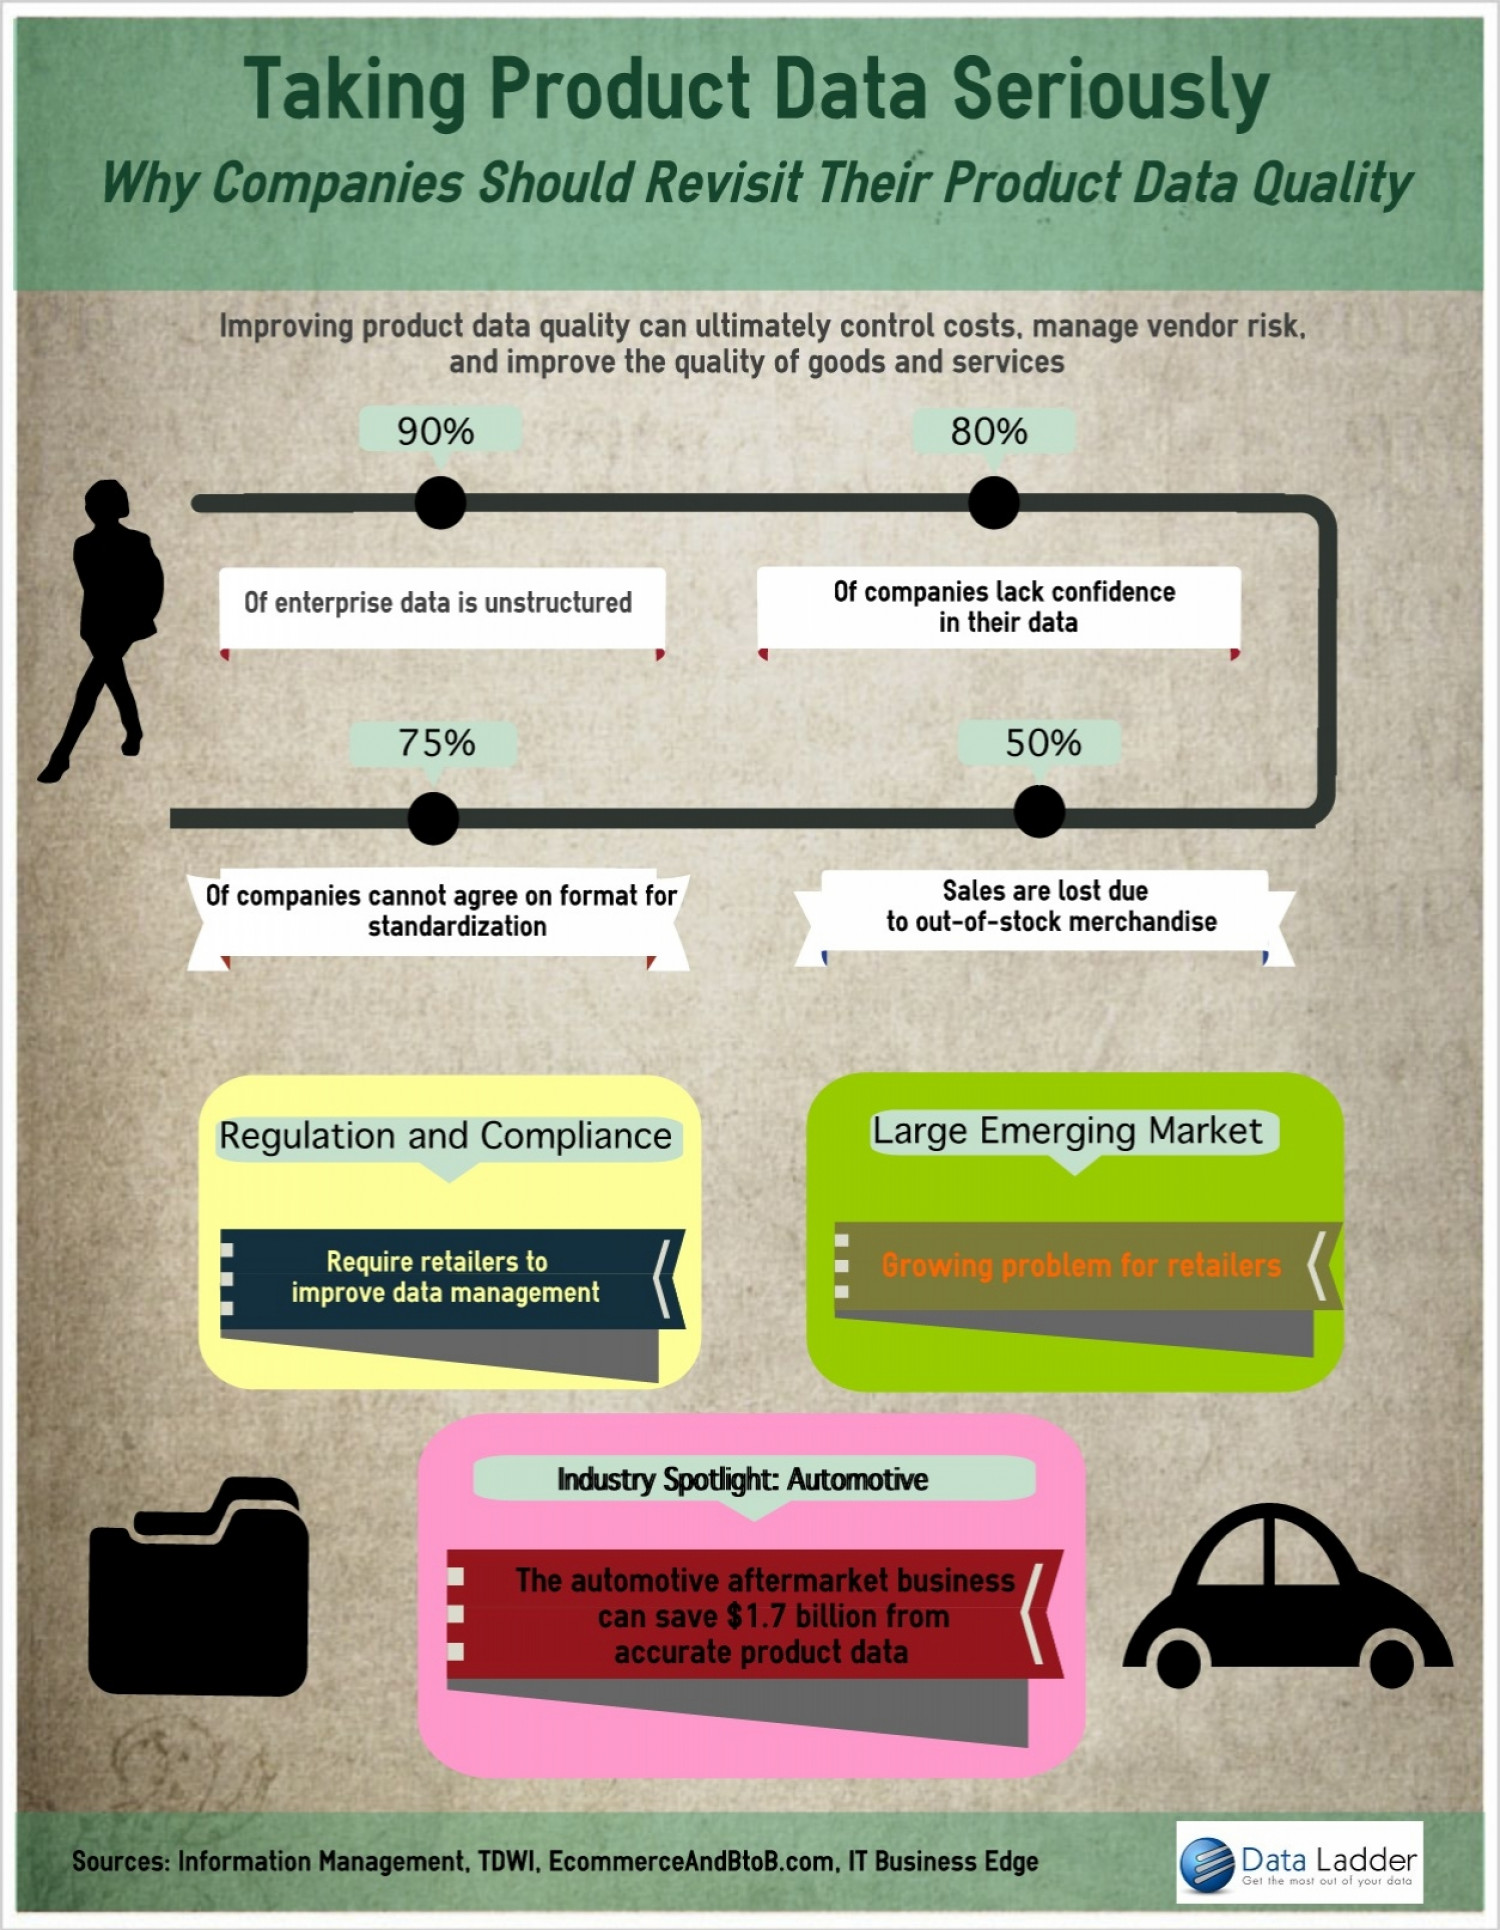 Taking Product Data Seriously Infographic